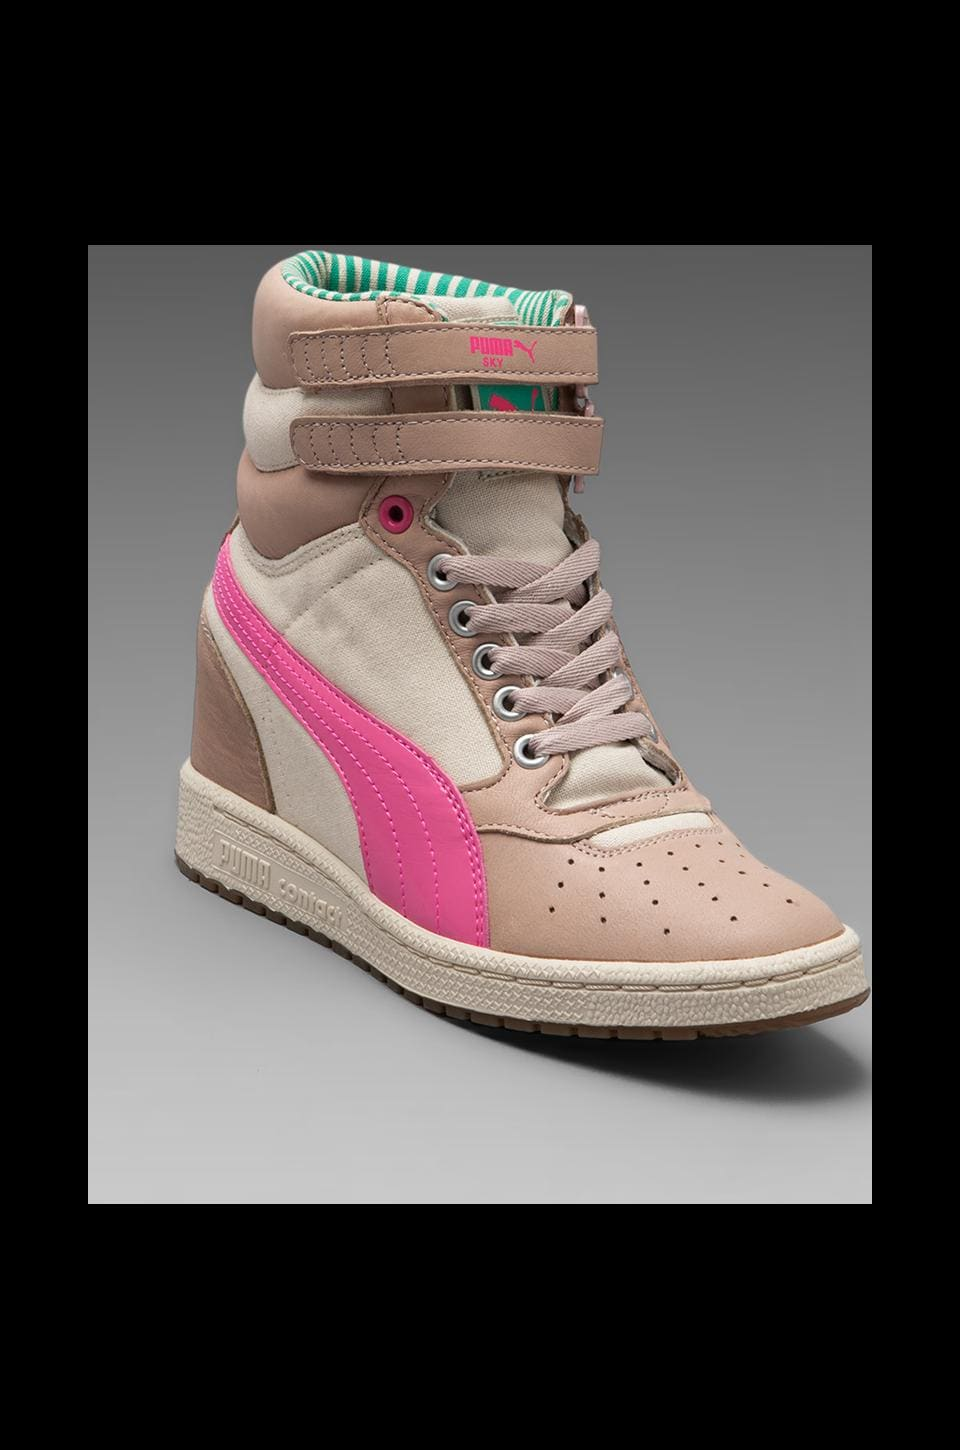 Puma by Mihara My-66 LC Sneaker in Peach Blush/Mint Leaf